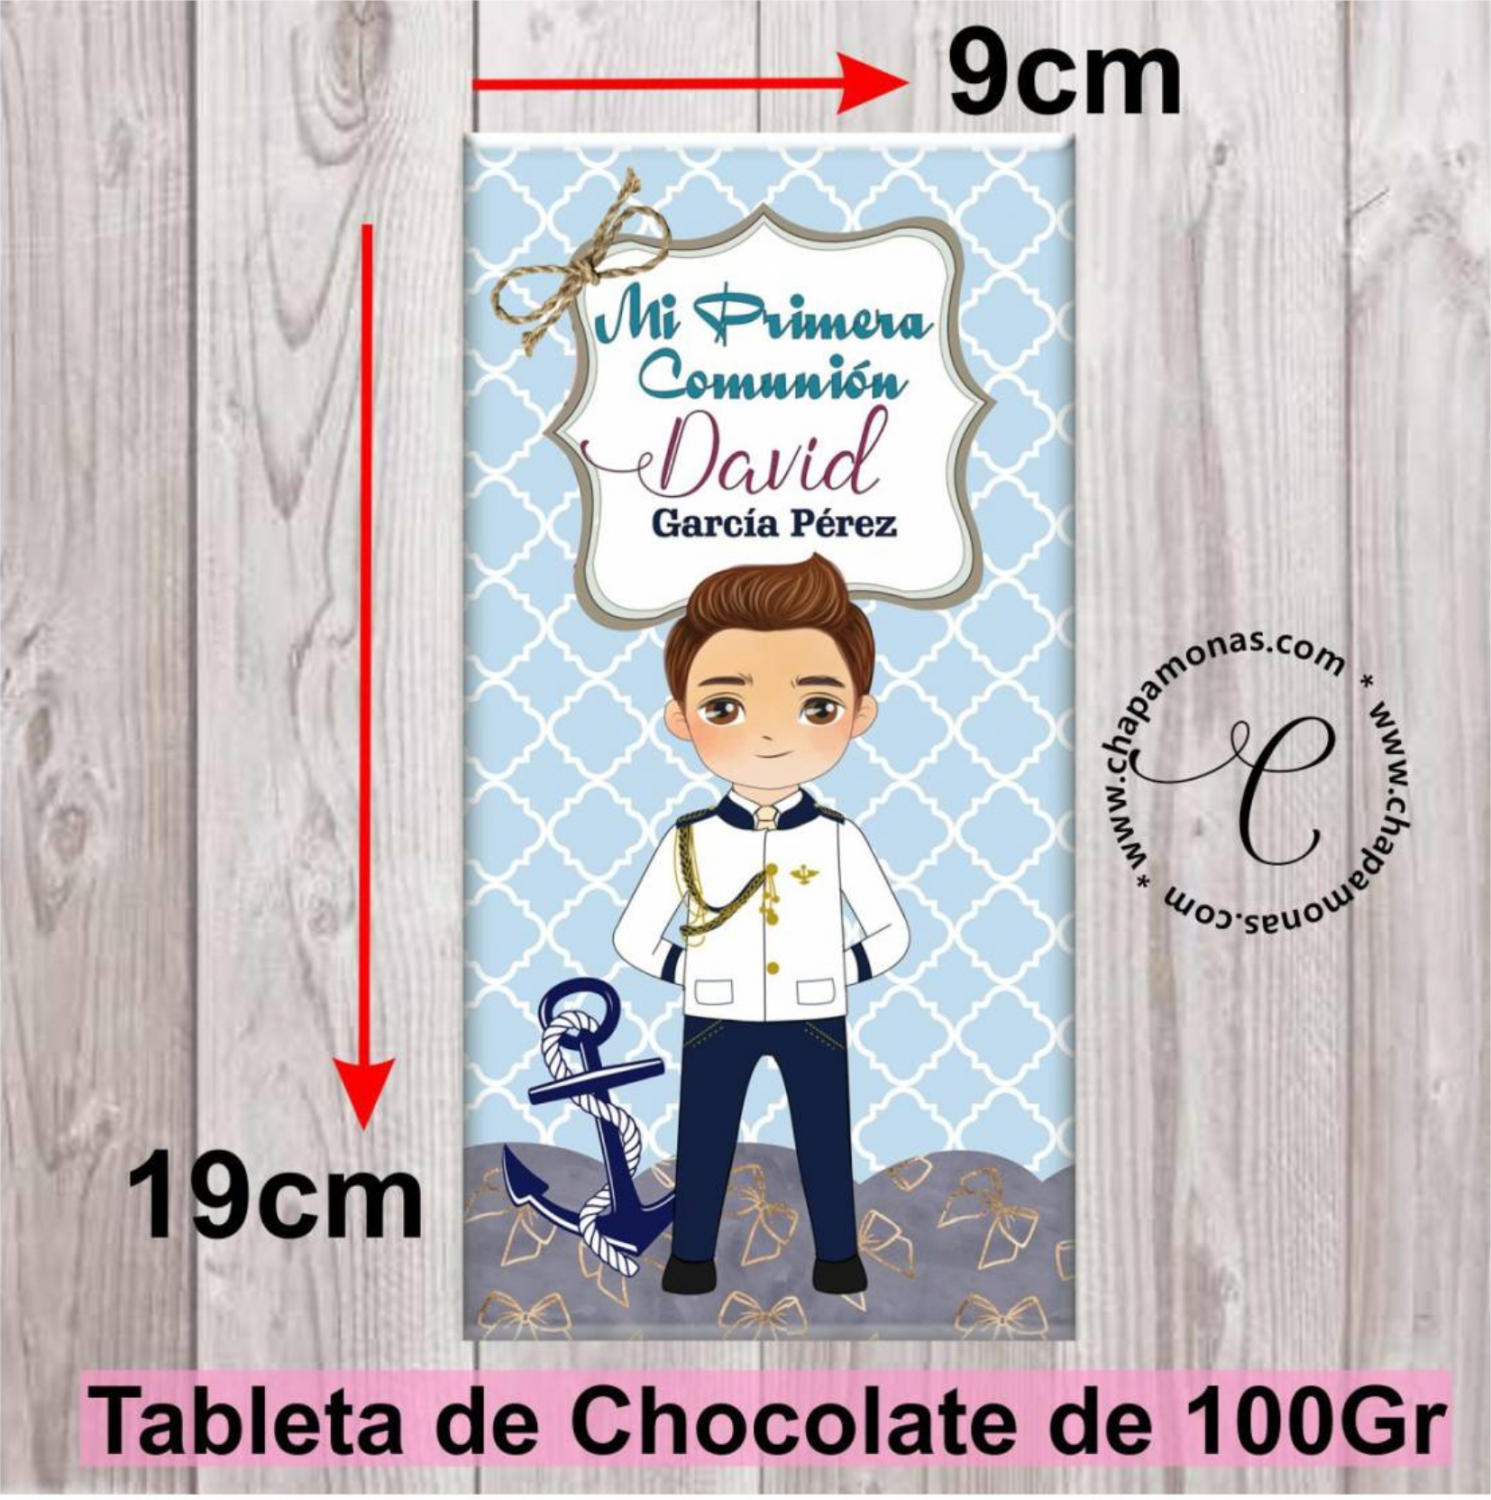 TABLETA DE CHOCOLATE PARA COMUNIÓN